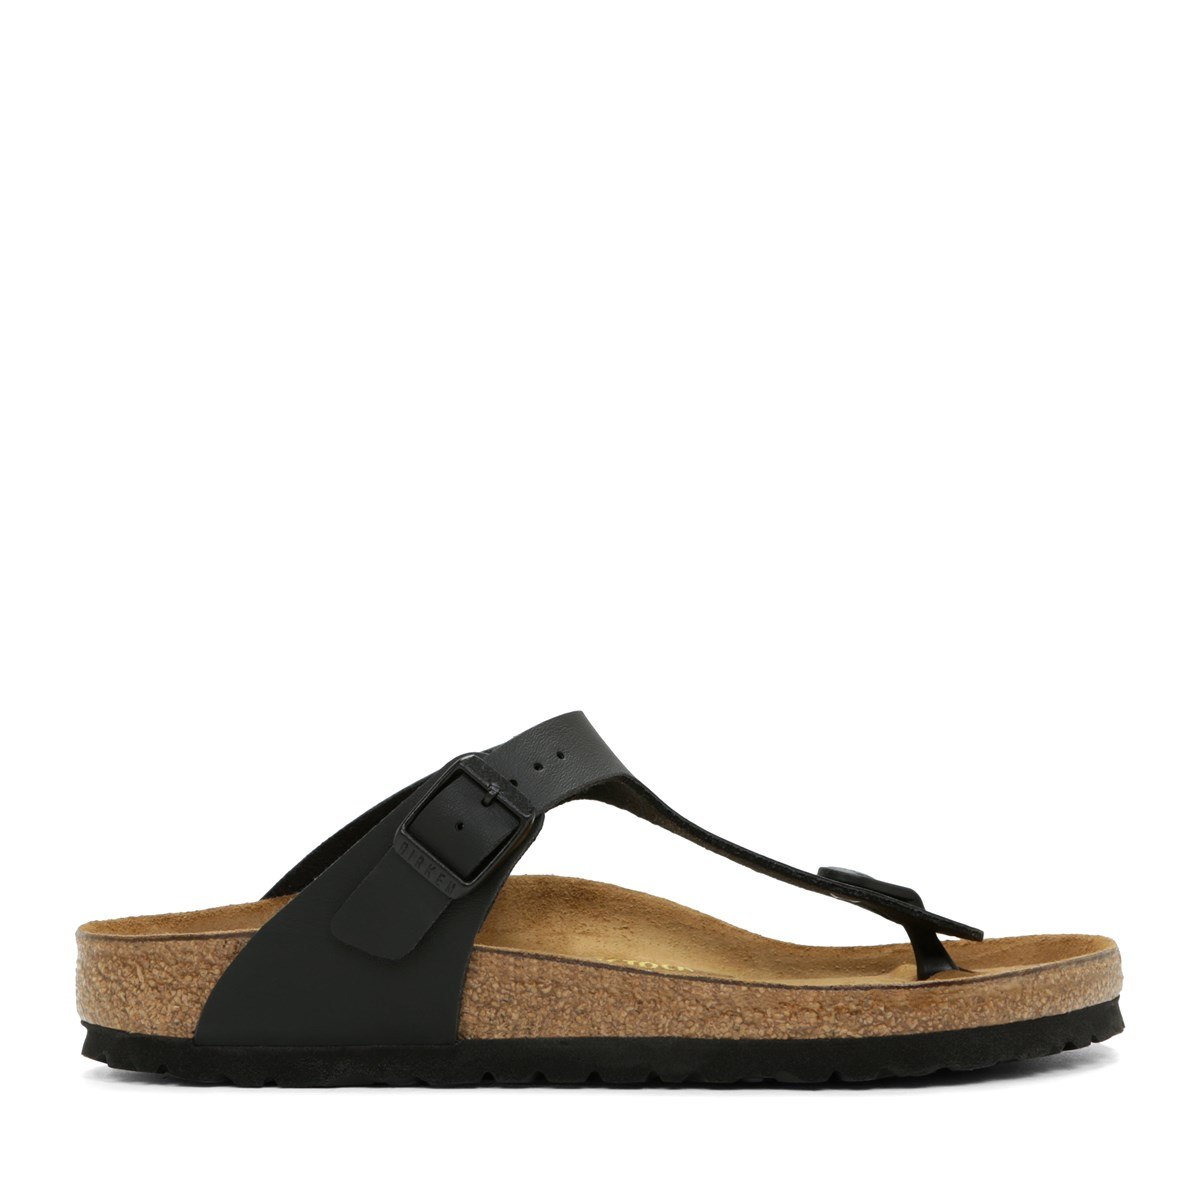 Men's Ramses Sandals in Black